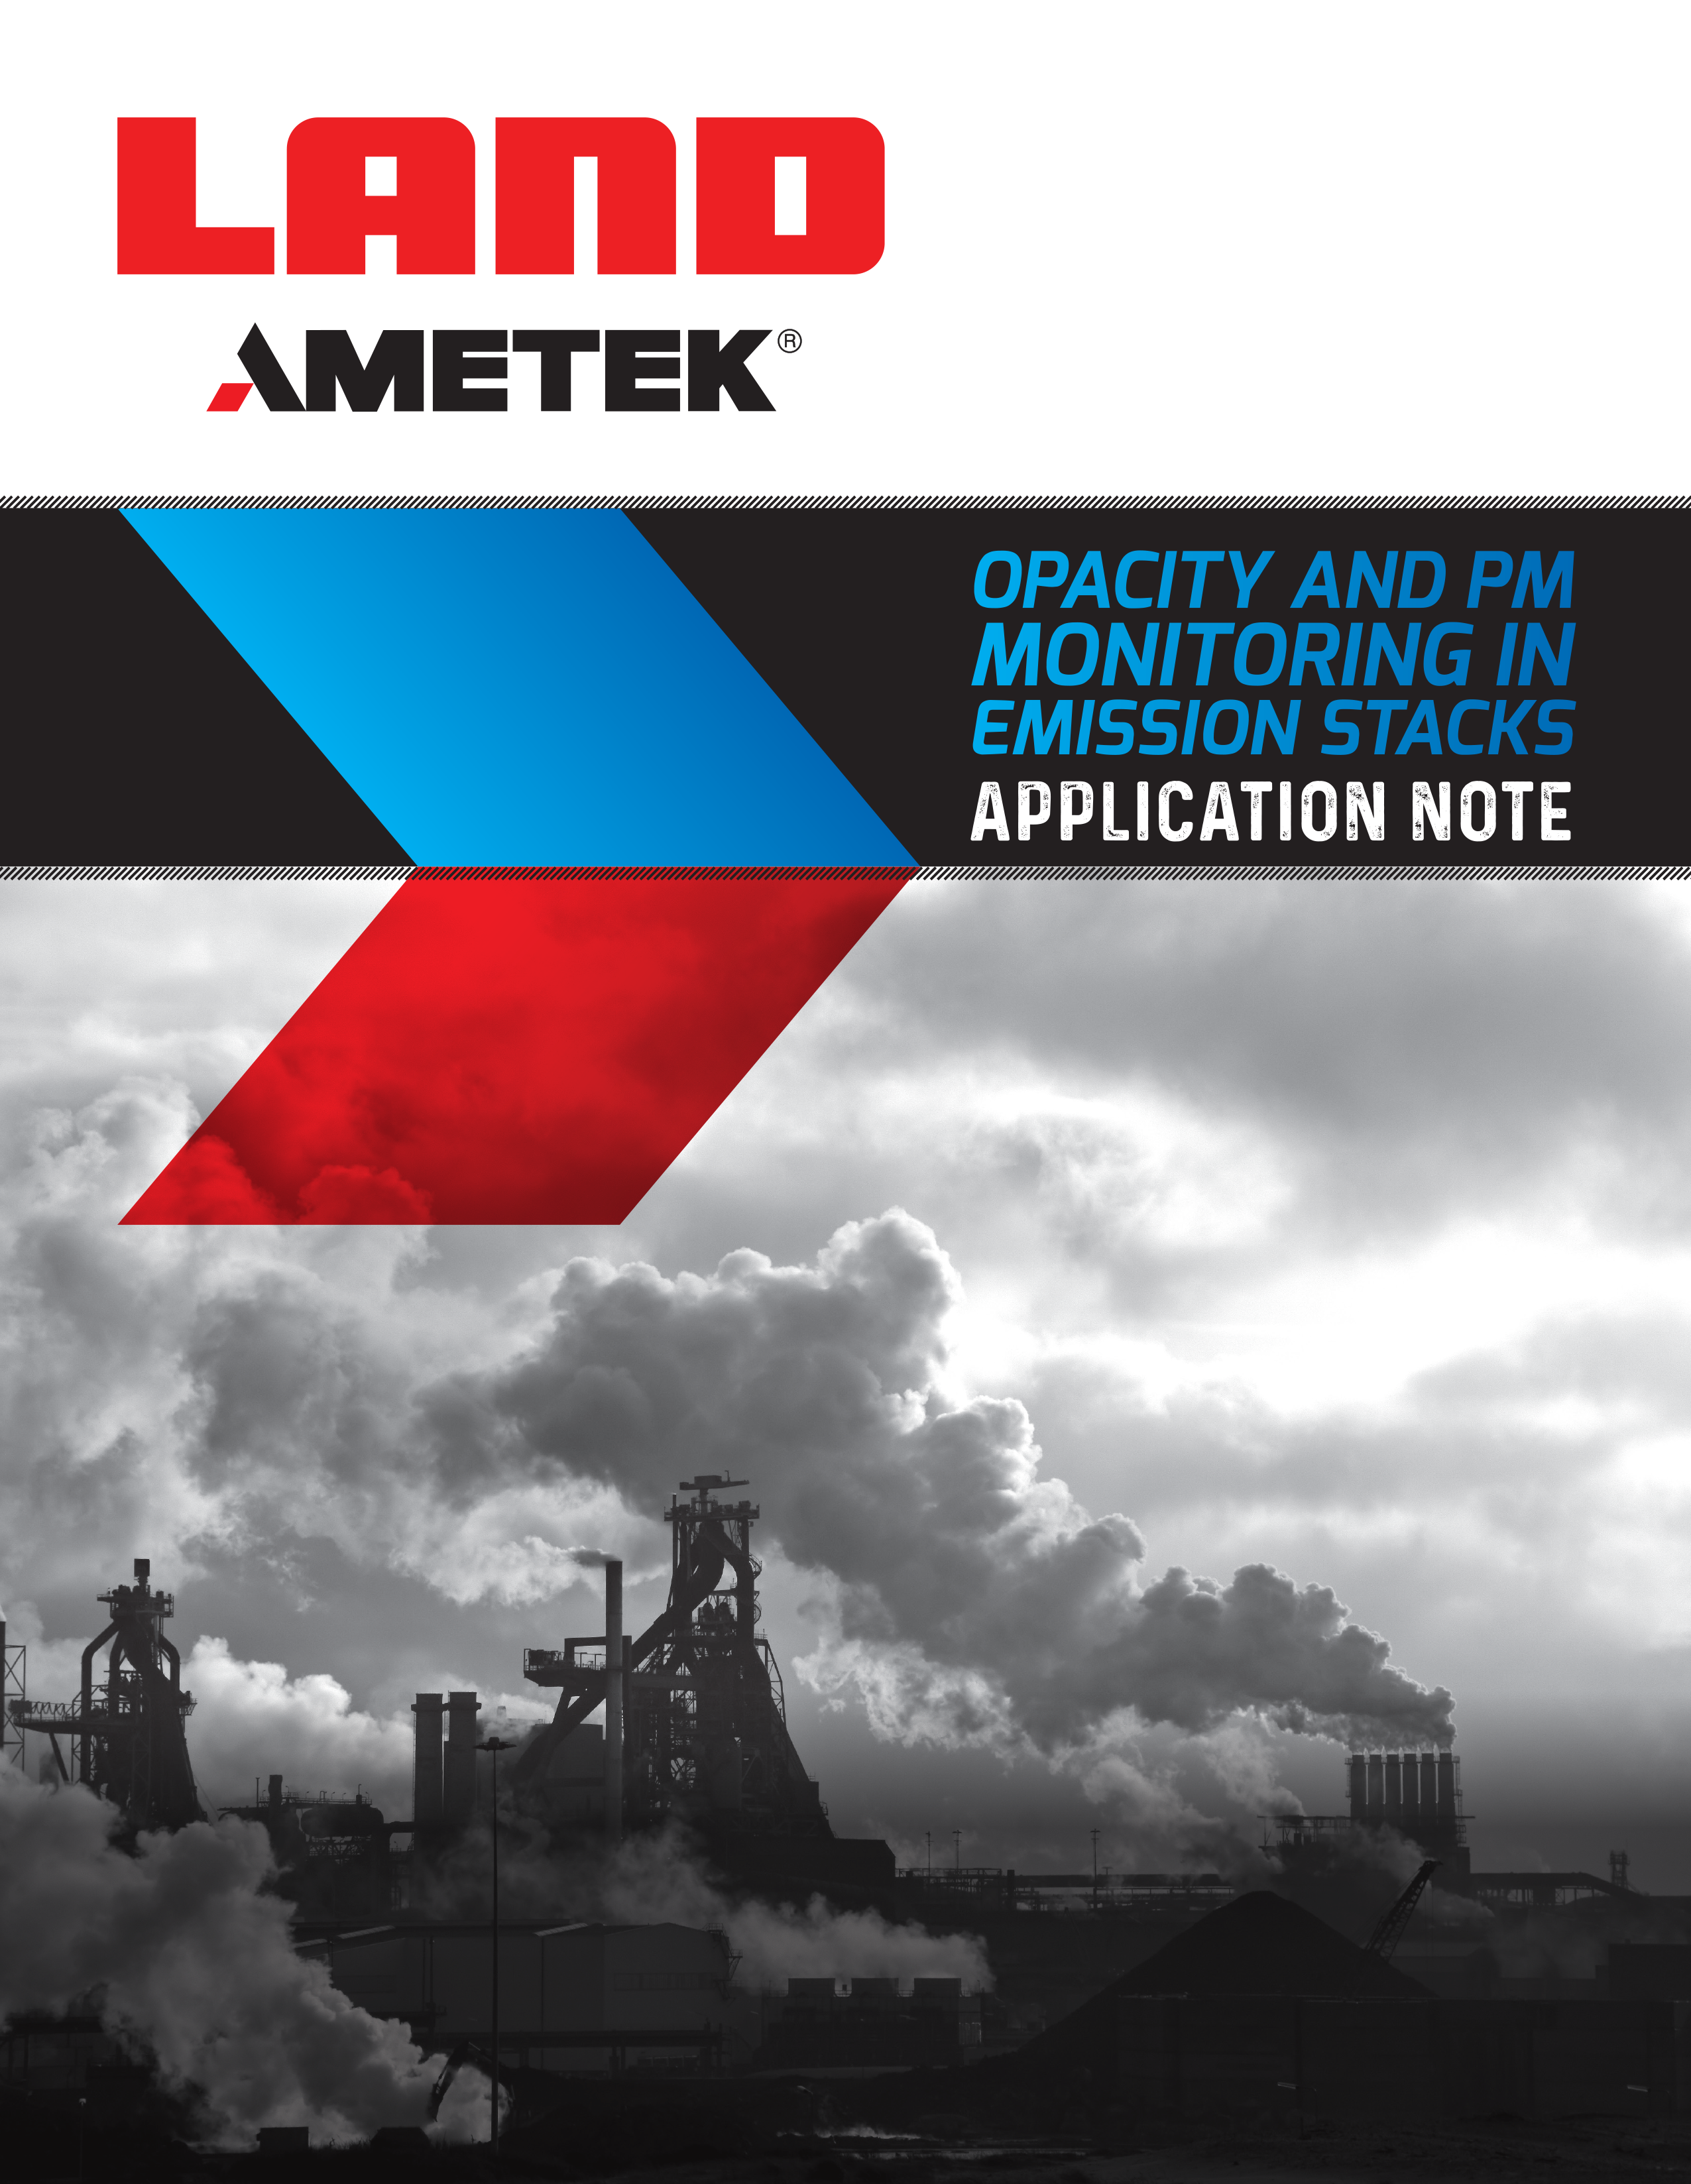 Opacity and Pm Monitoring in Emission Stacks - Application Note (EN)